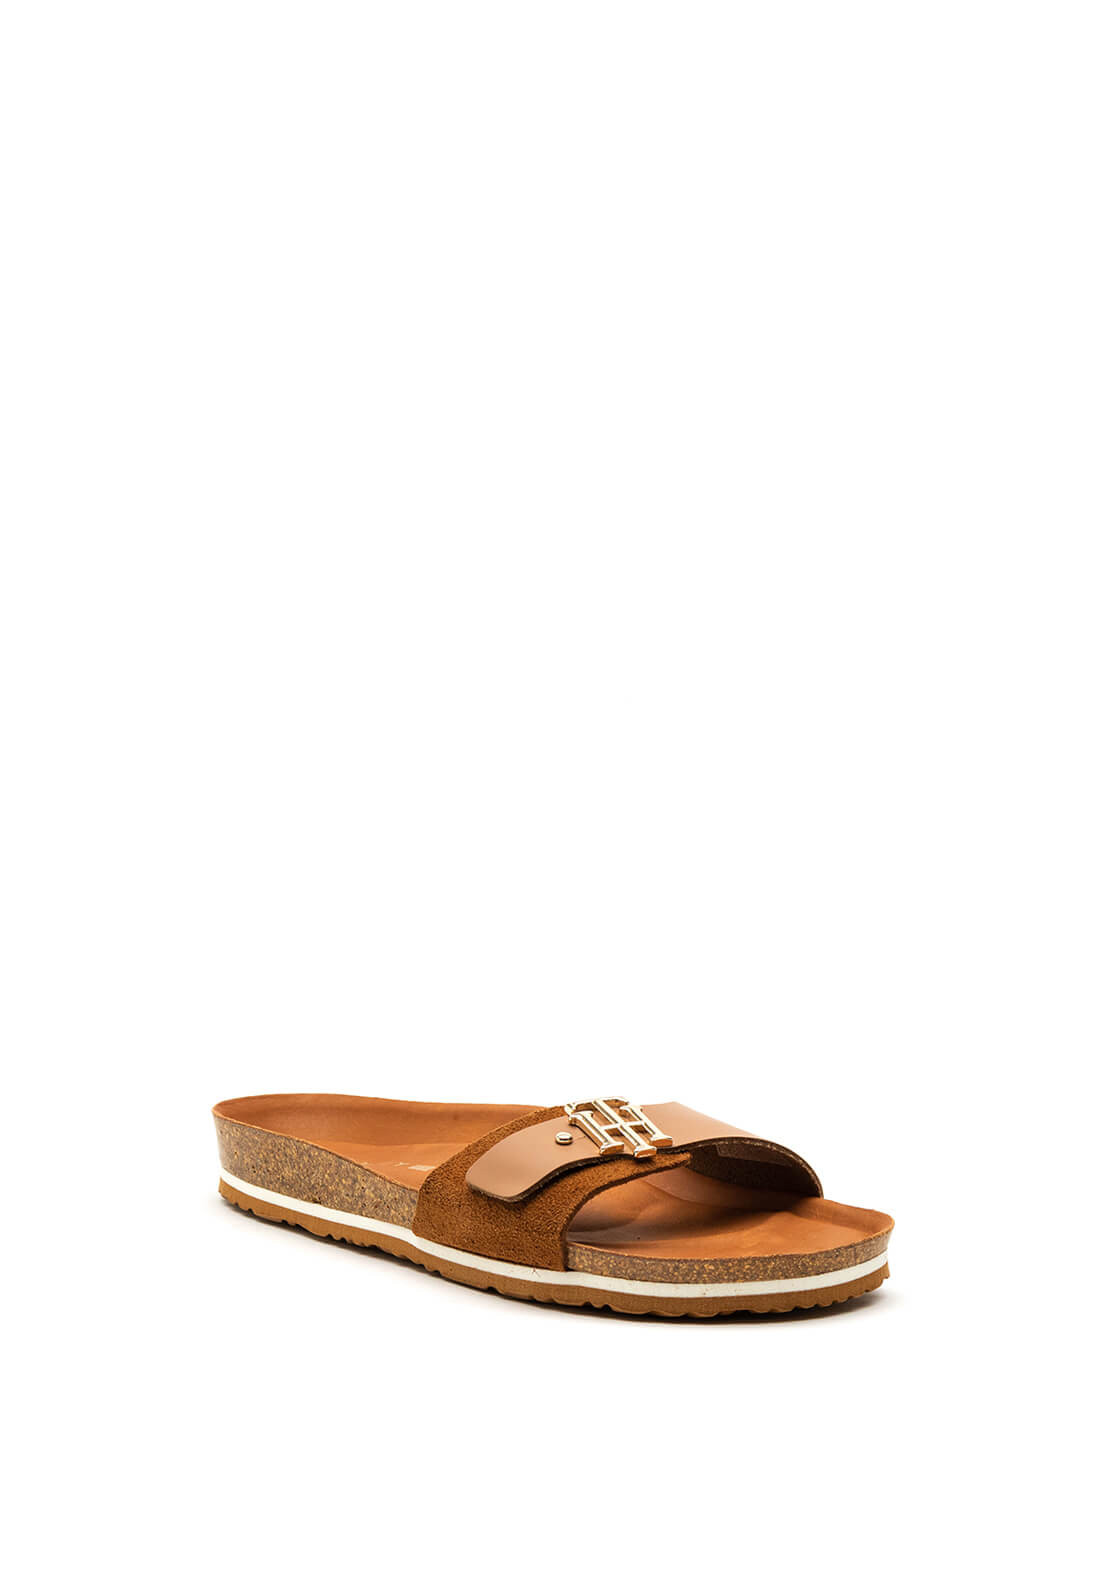 Tommy Hilfiger Womens Leather & Suede Monogram Sandals, Tan